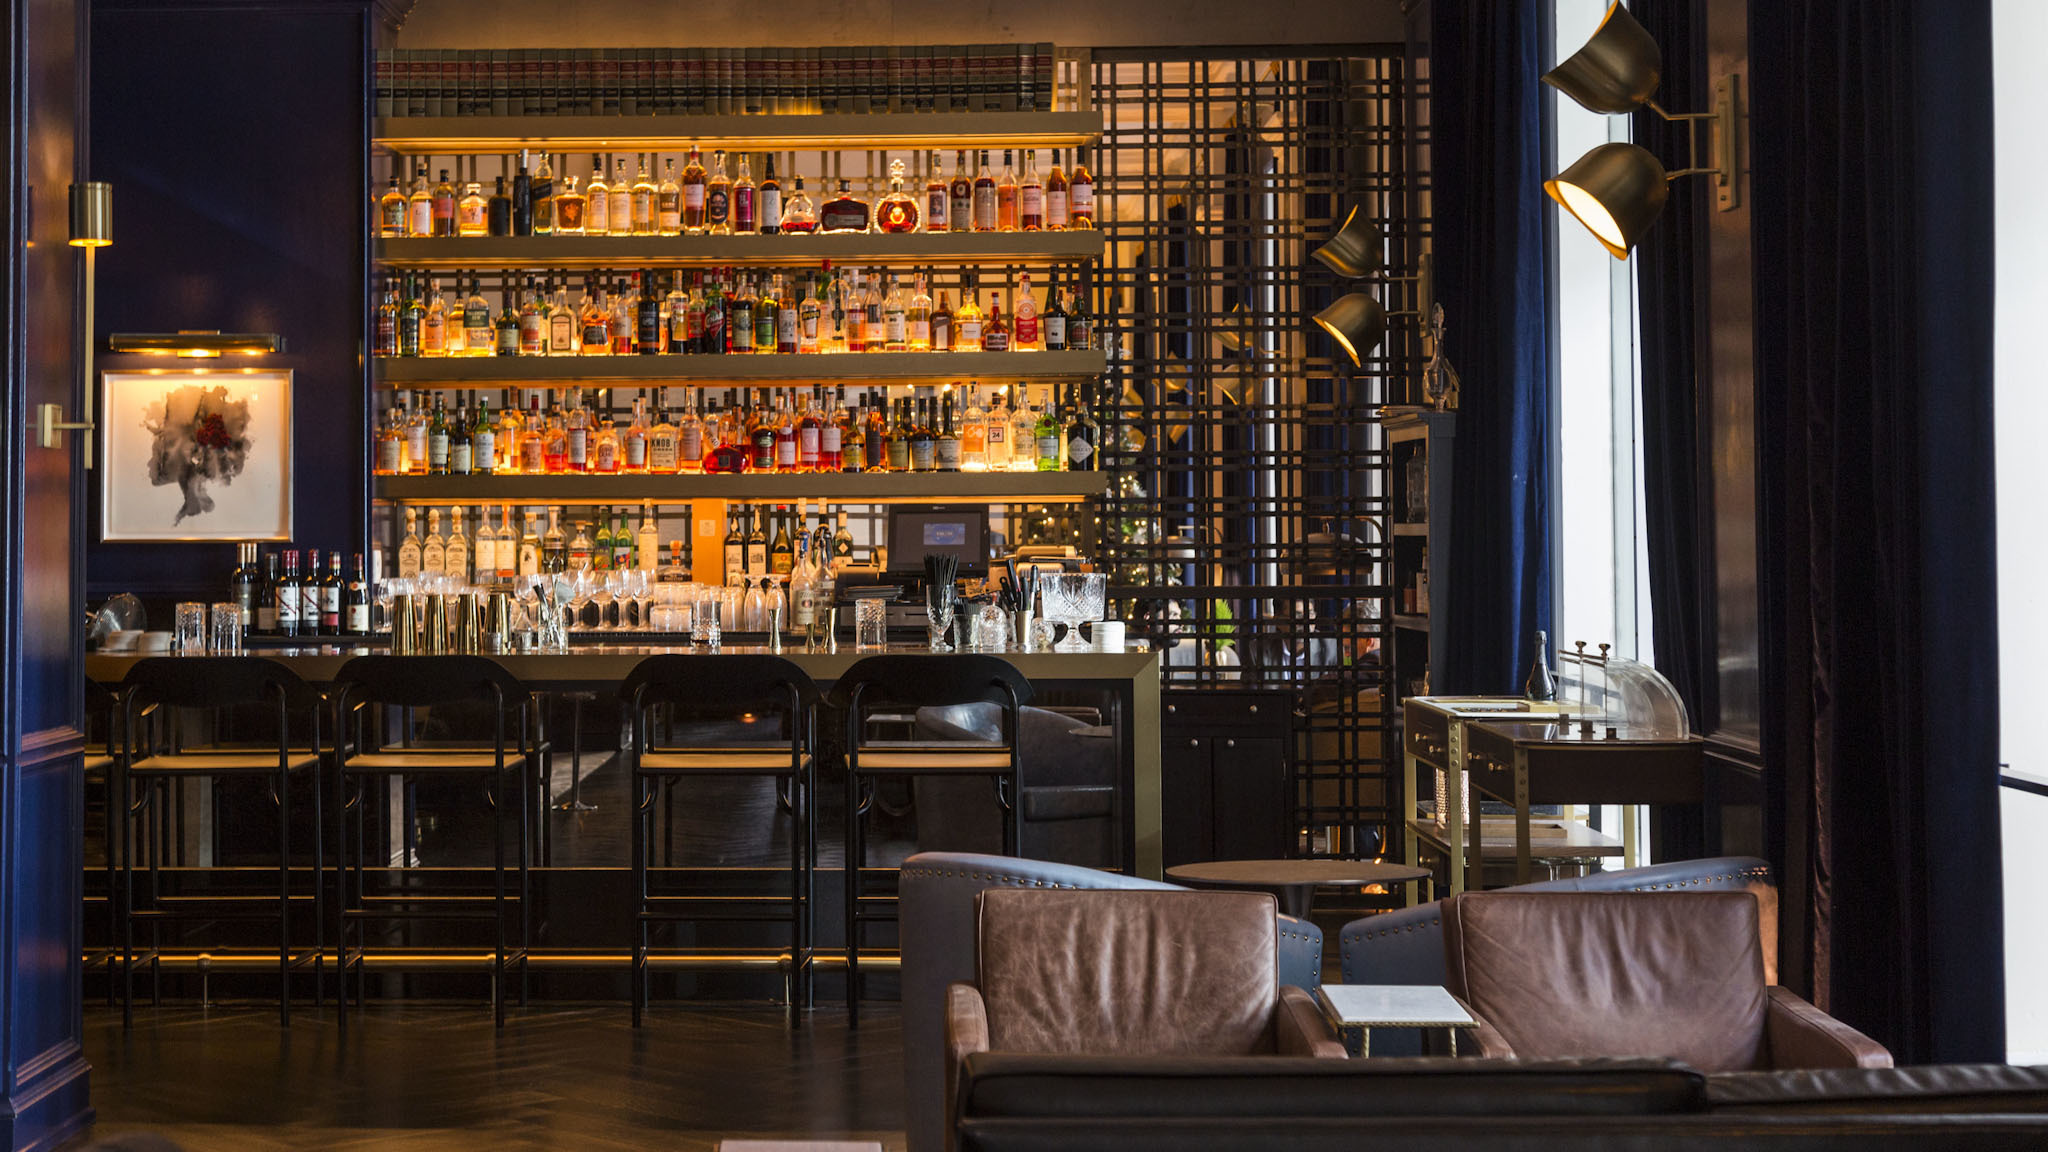 Check into these exciting Chicago hotel bars